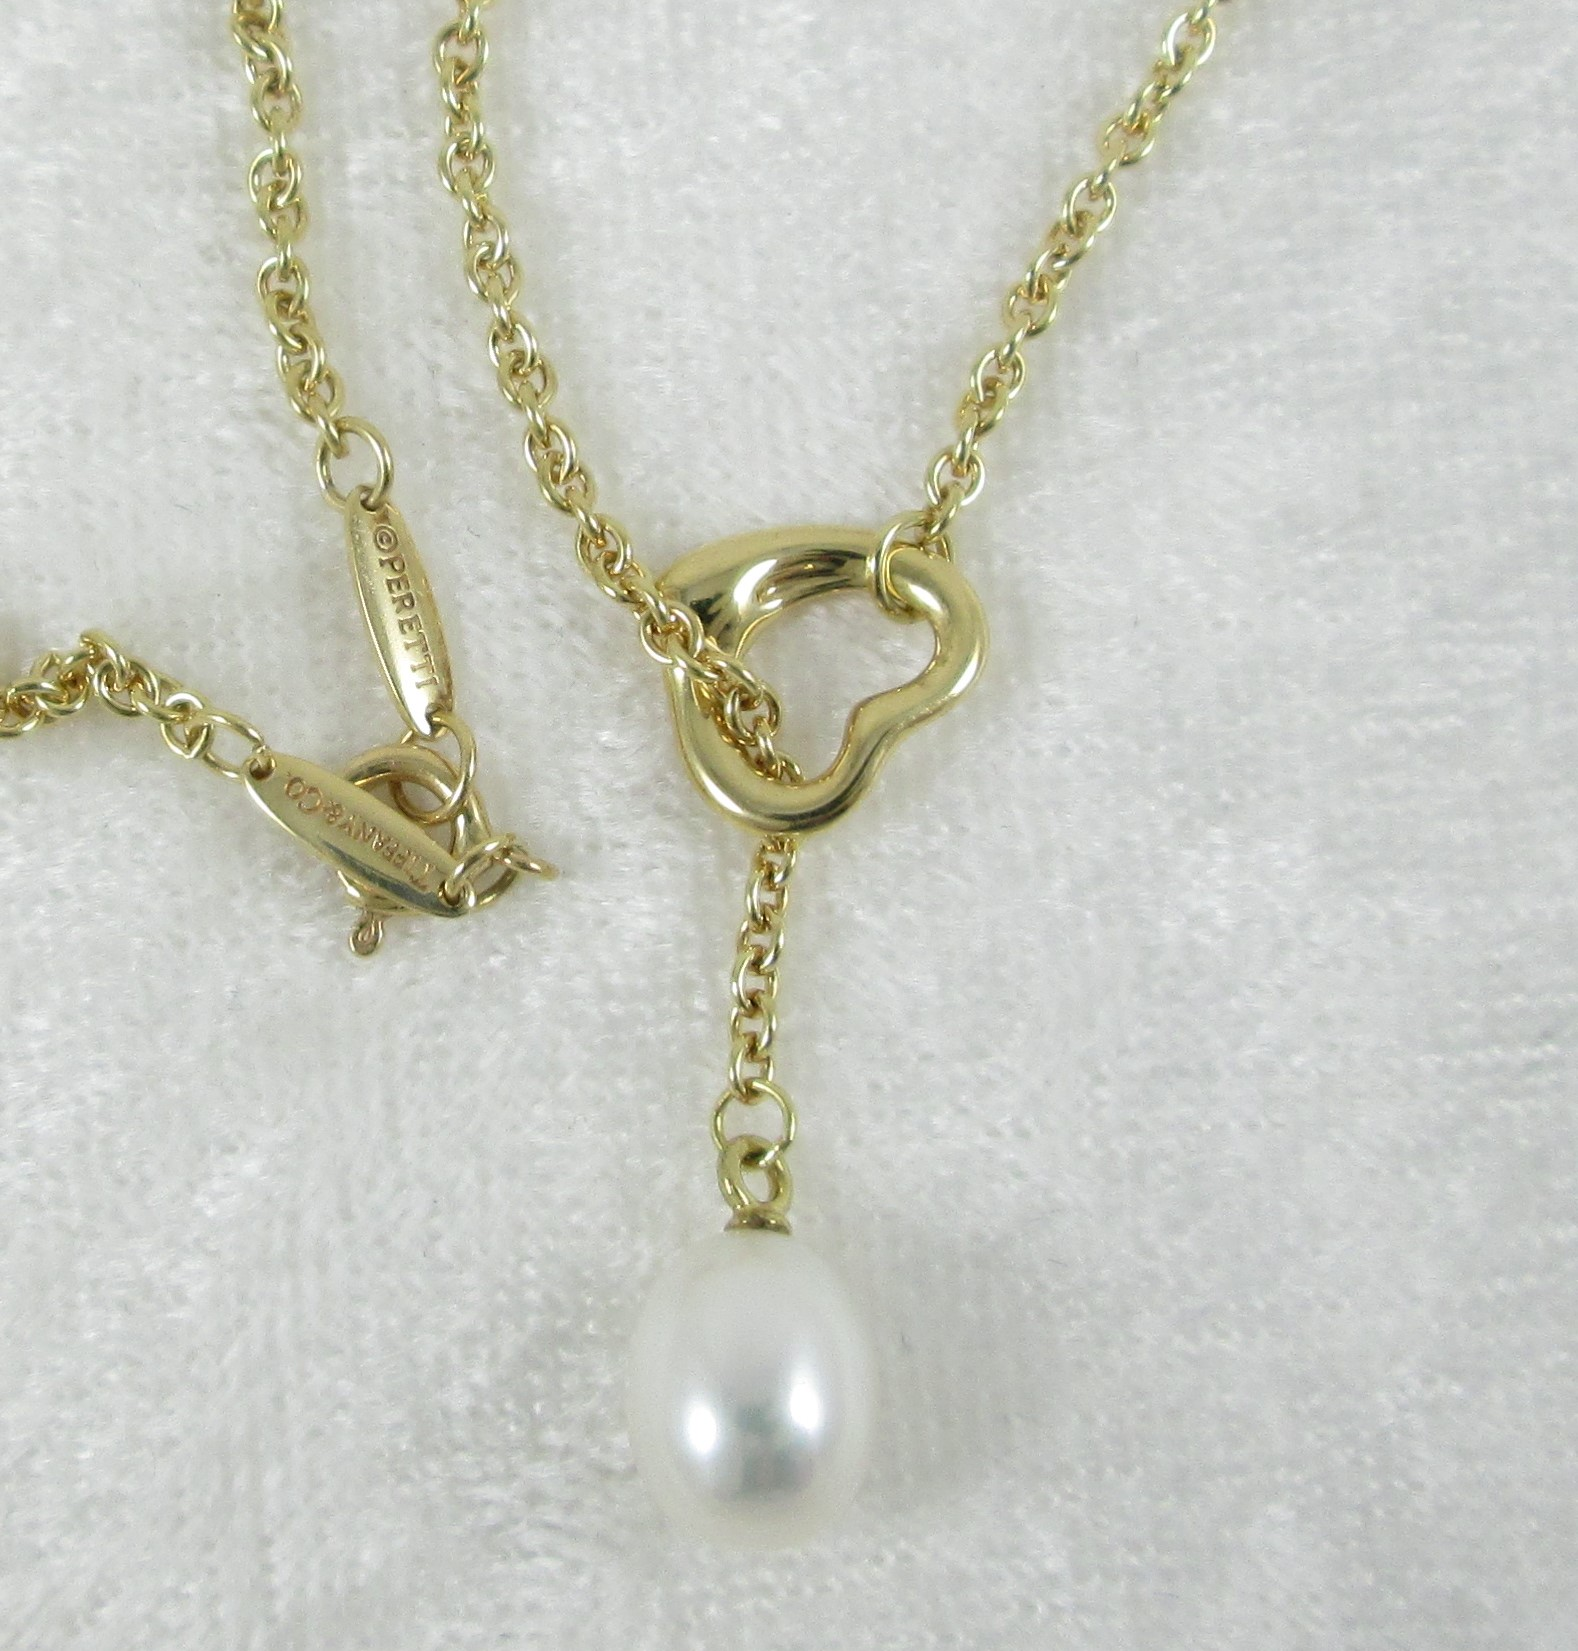 c7d419a7b157b Tiffany 18K Gold and Pearl Open Heart Lariat Necklace | The Cutter ...